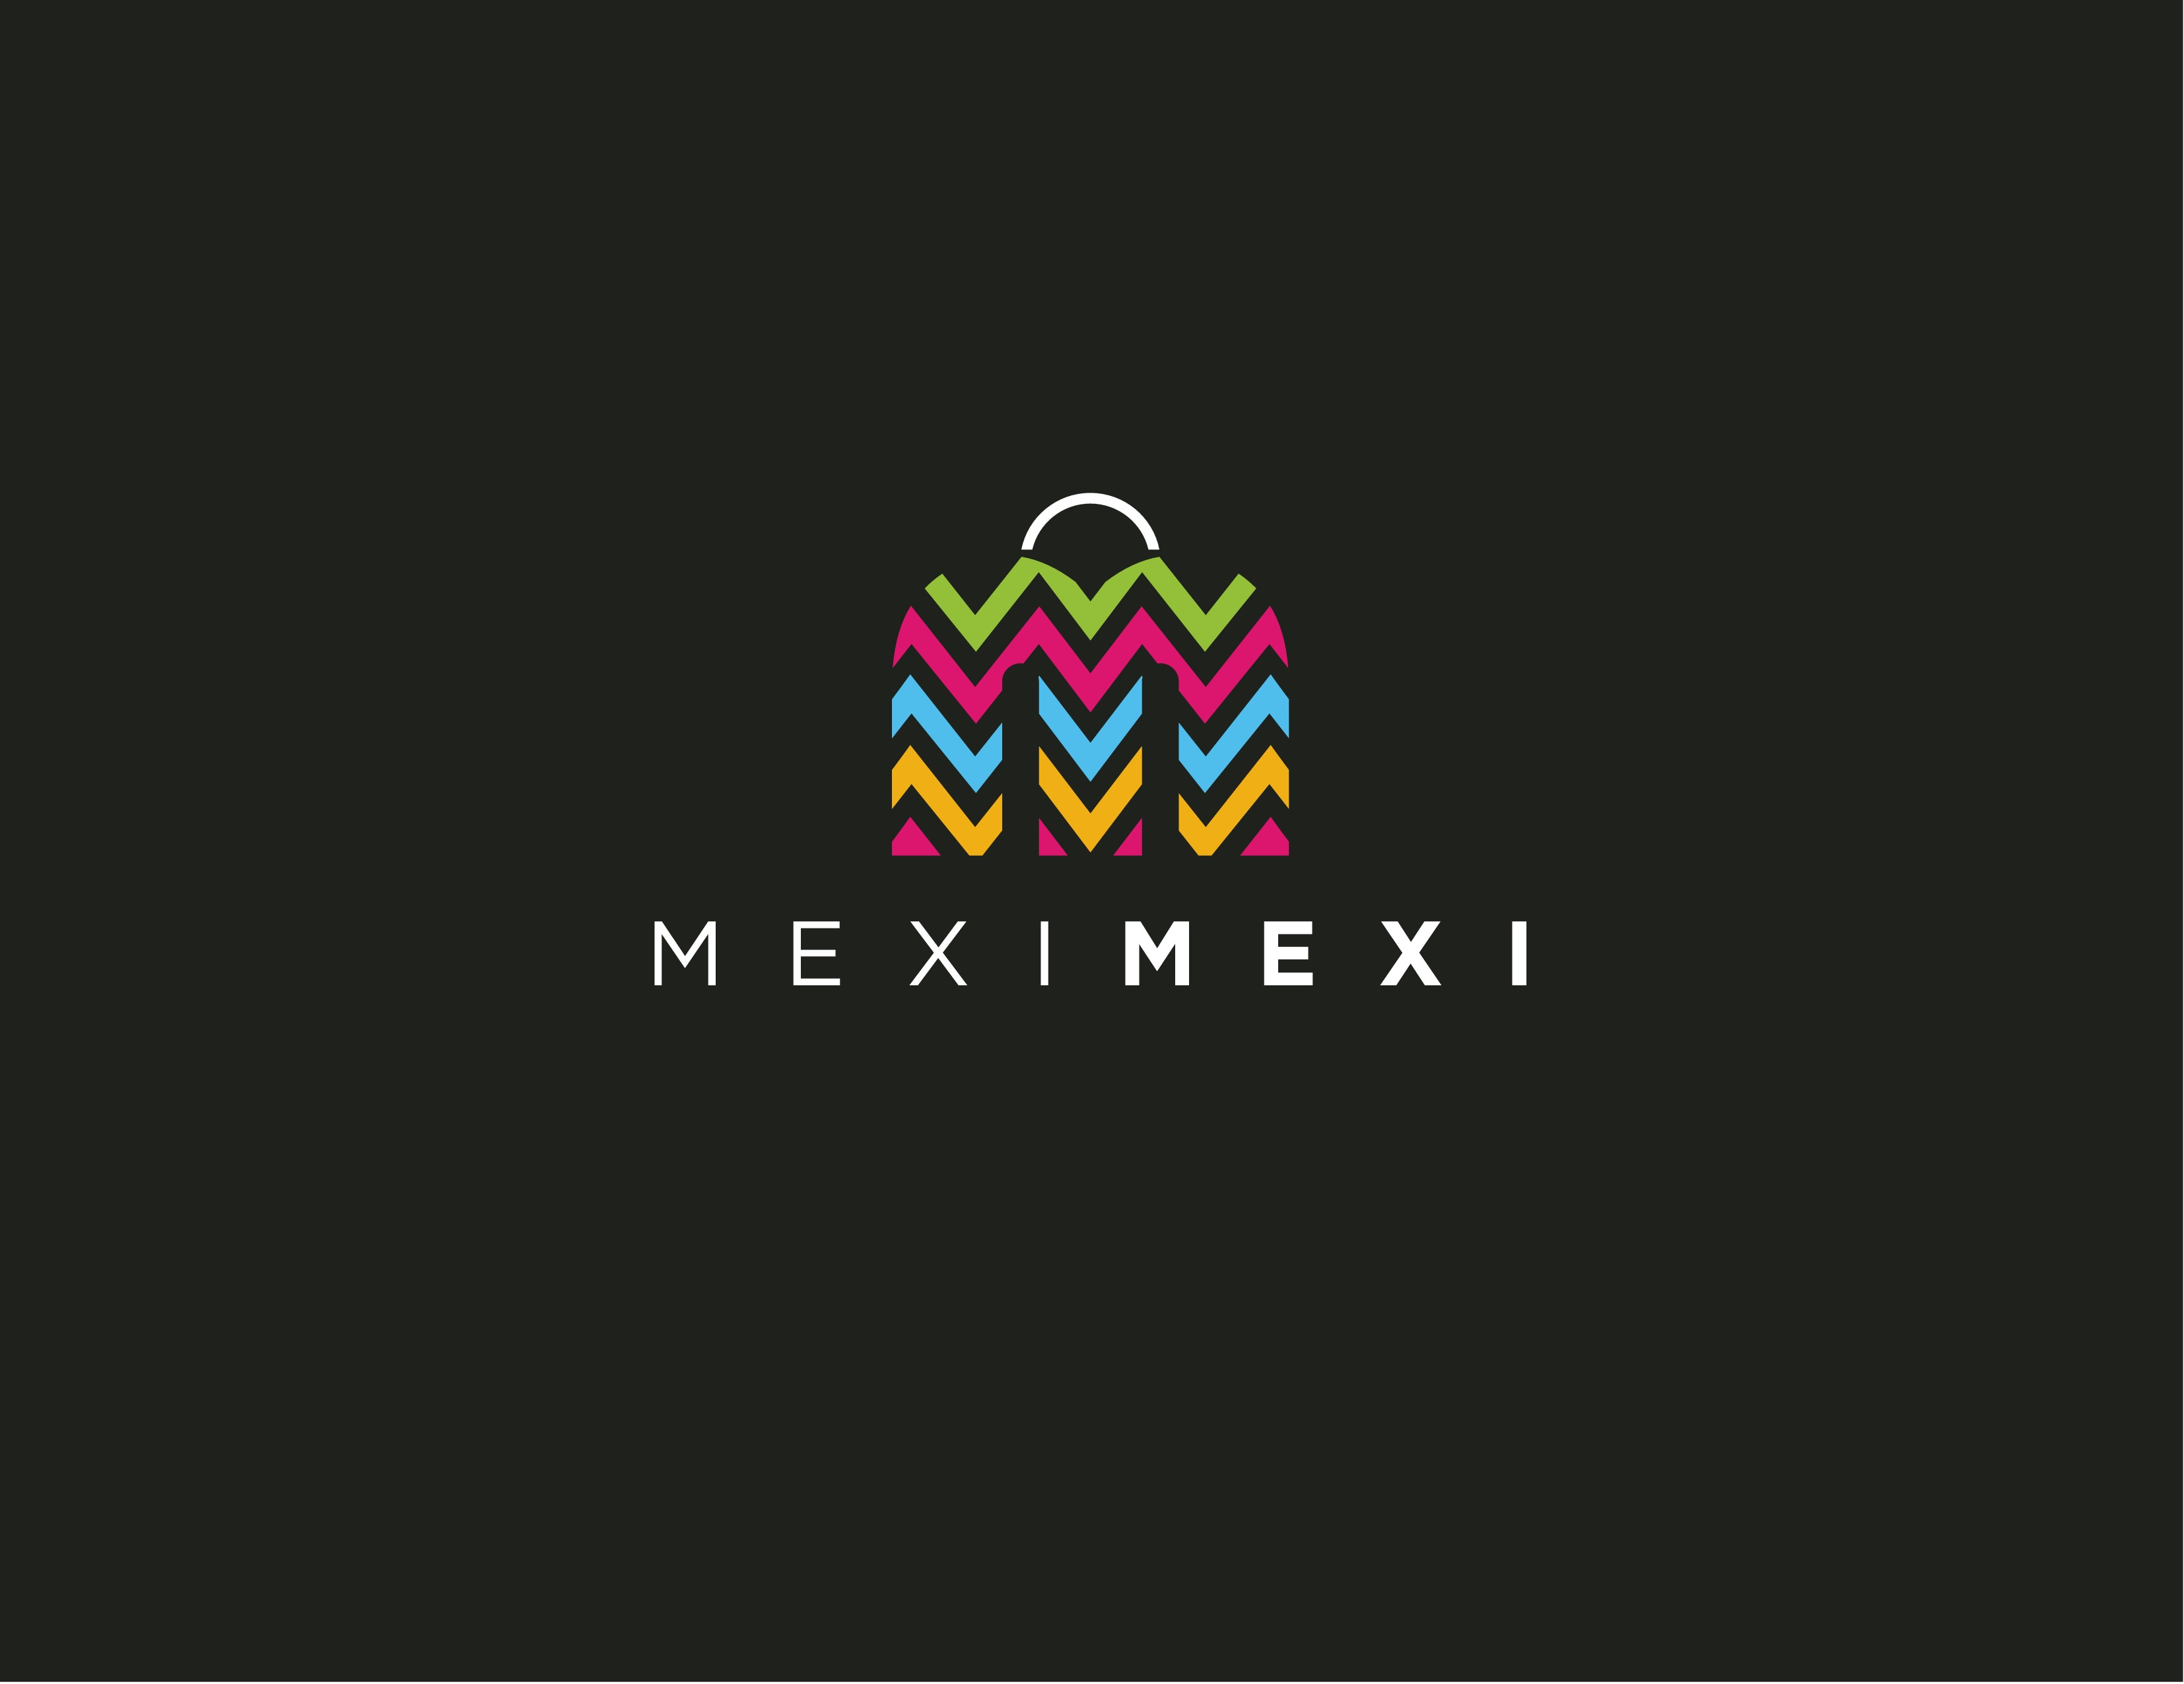 Our Mexican Bags Store needs a logo